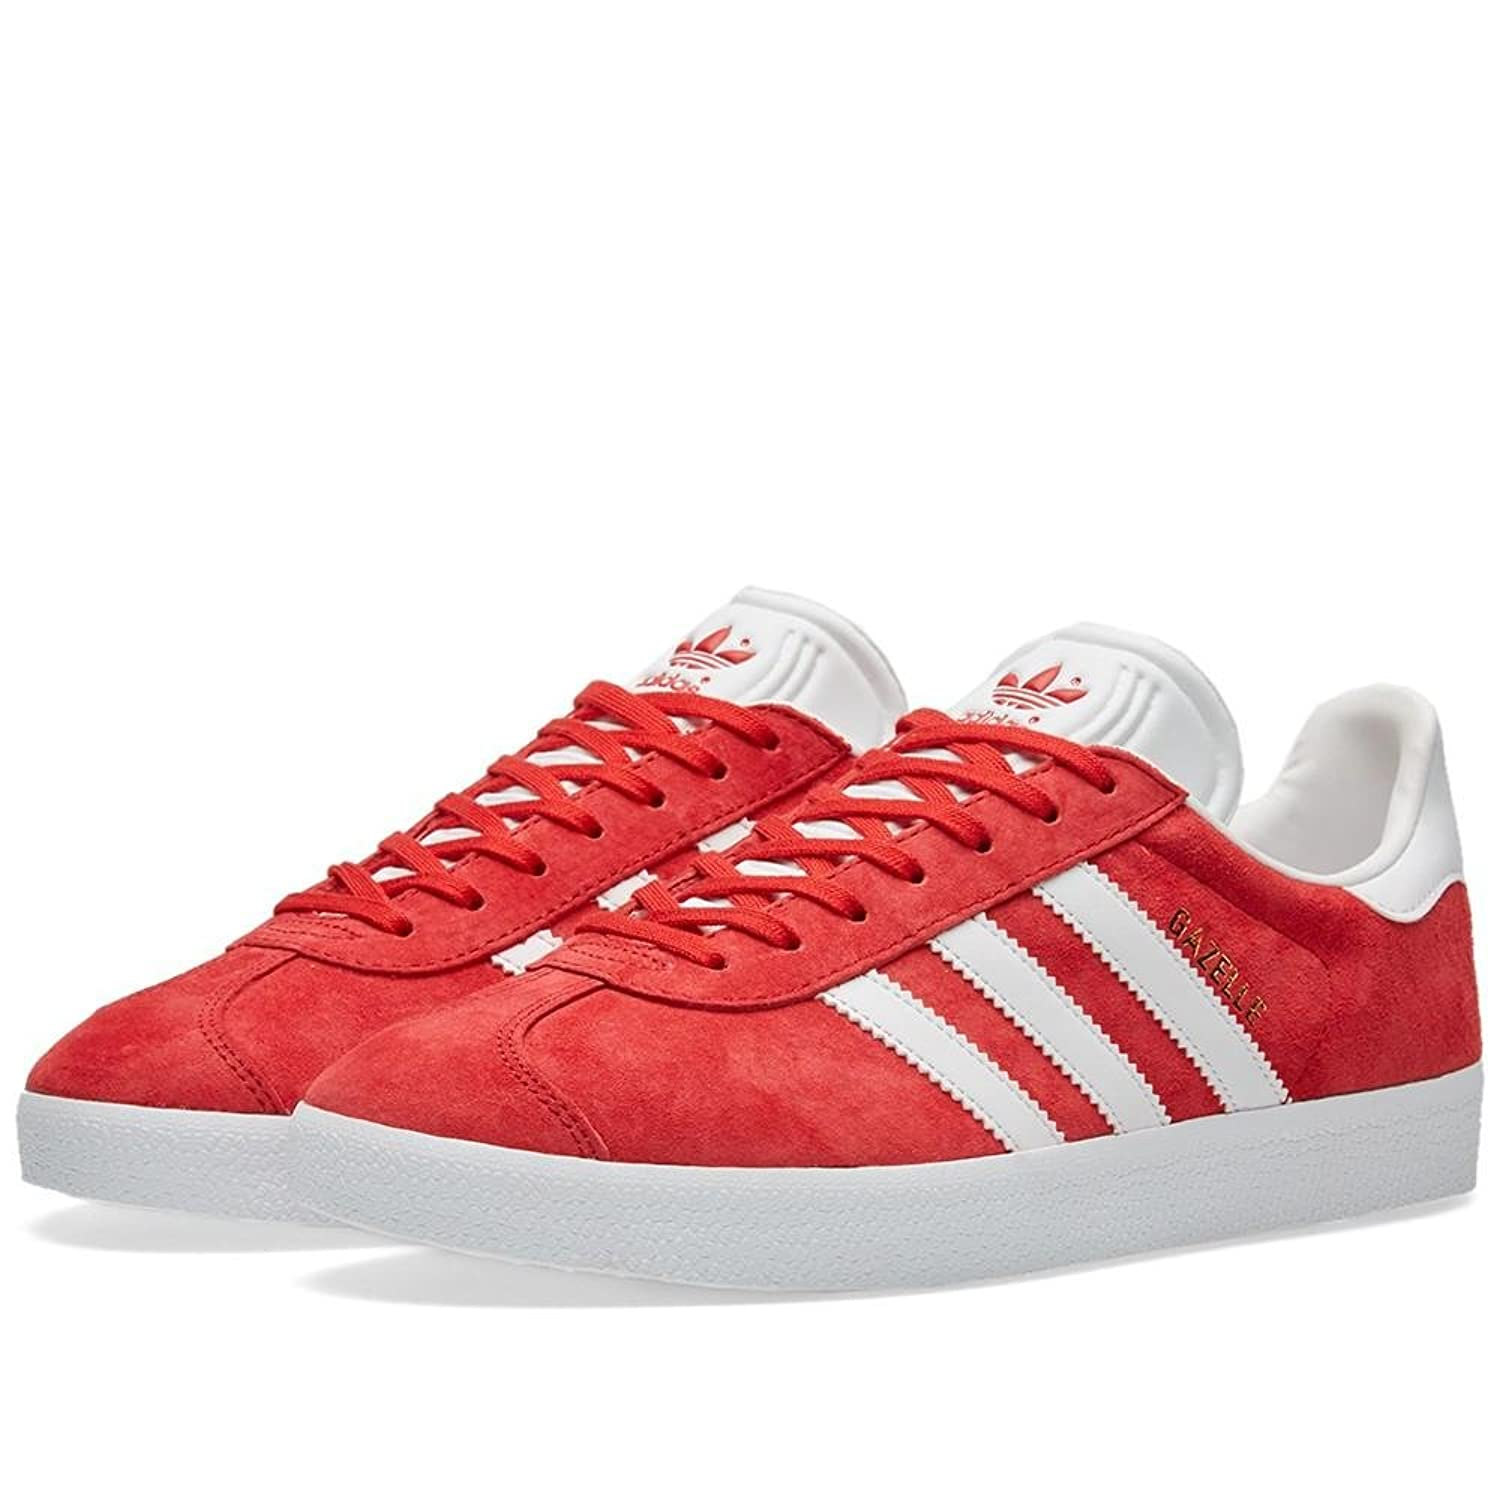 Adidas Originals Men\u0027s Gazelle Lace-up Sneaker Red BB5486